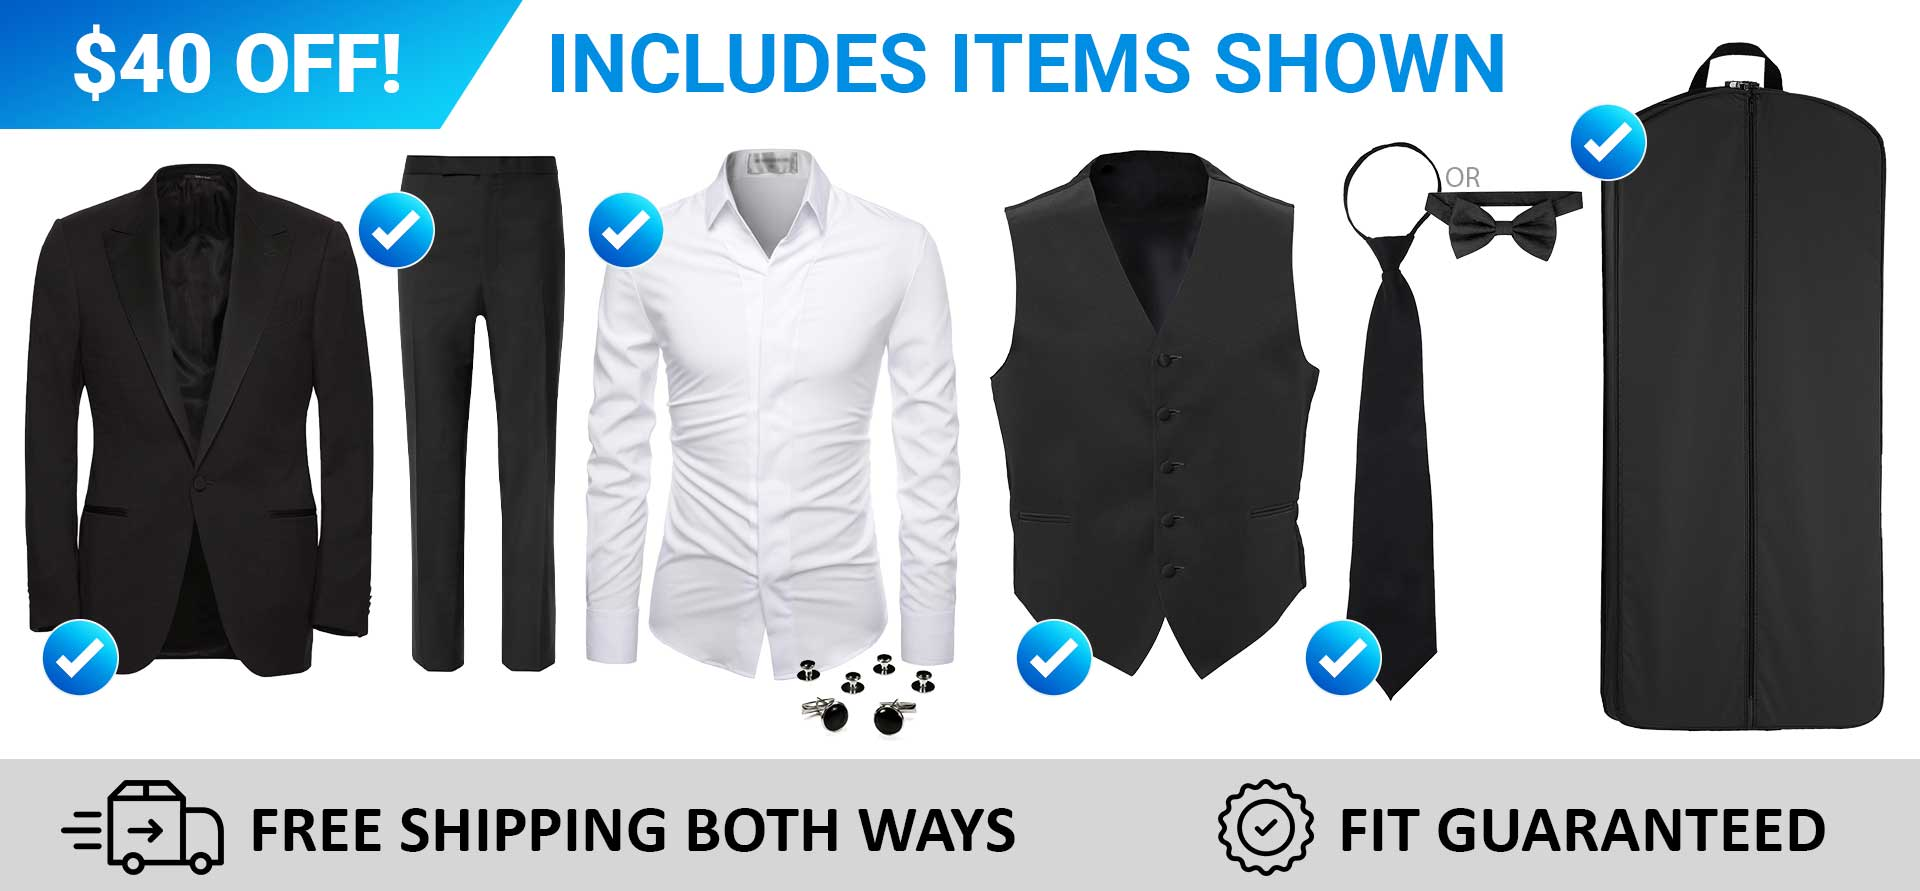 A tuxedo package includes a variety of accessories.